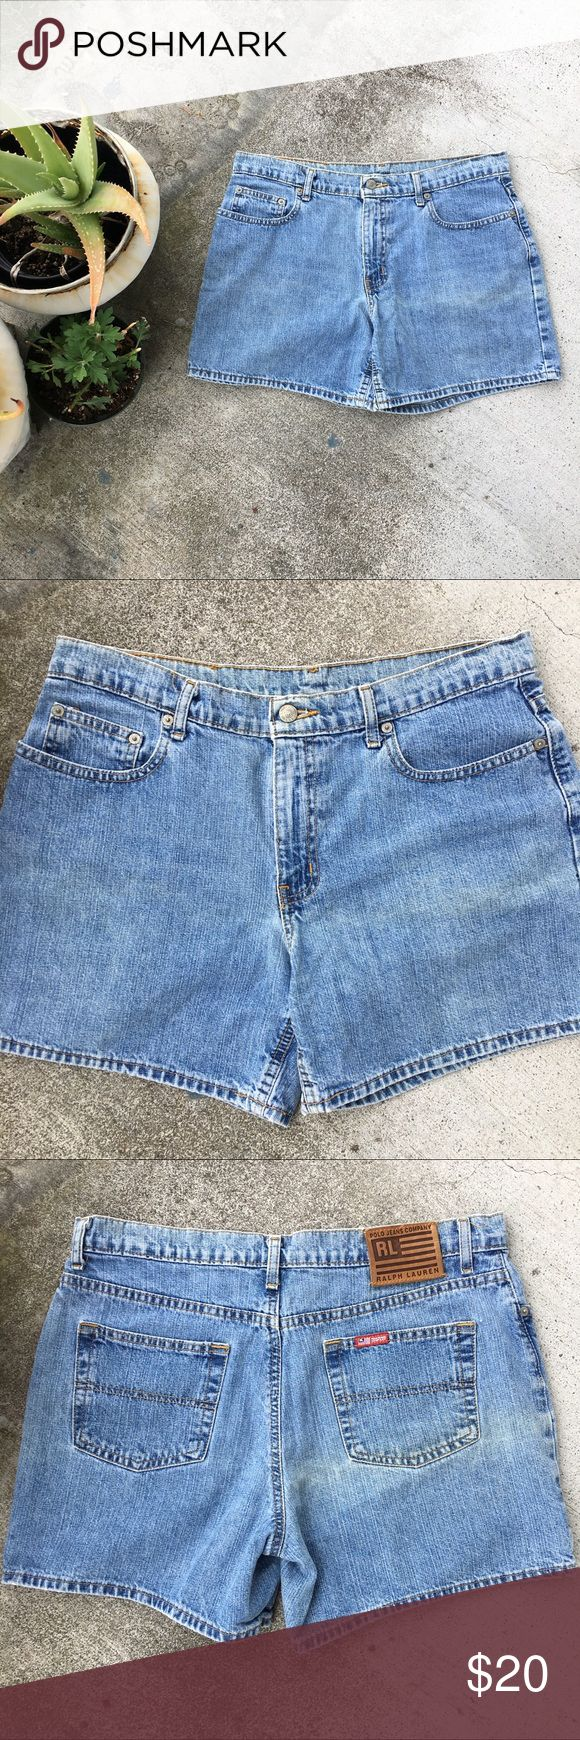 "Ralph Lauren Polo Sz 12 Vintage Polo Jeans Co. Mom Shorts by Ralph Lauren  Size 12 100% Cotton  Waist 34"" with 12"" Rise  Flaw Light Discoloration shown in photos  #vintage #momshorts #momjeans #denim #shorts #ralphlauren #polo Polo by Ralph Lauren Shorts Jean Shorts"